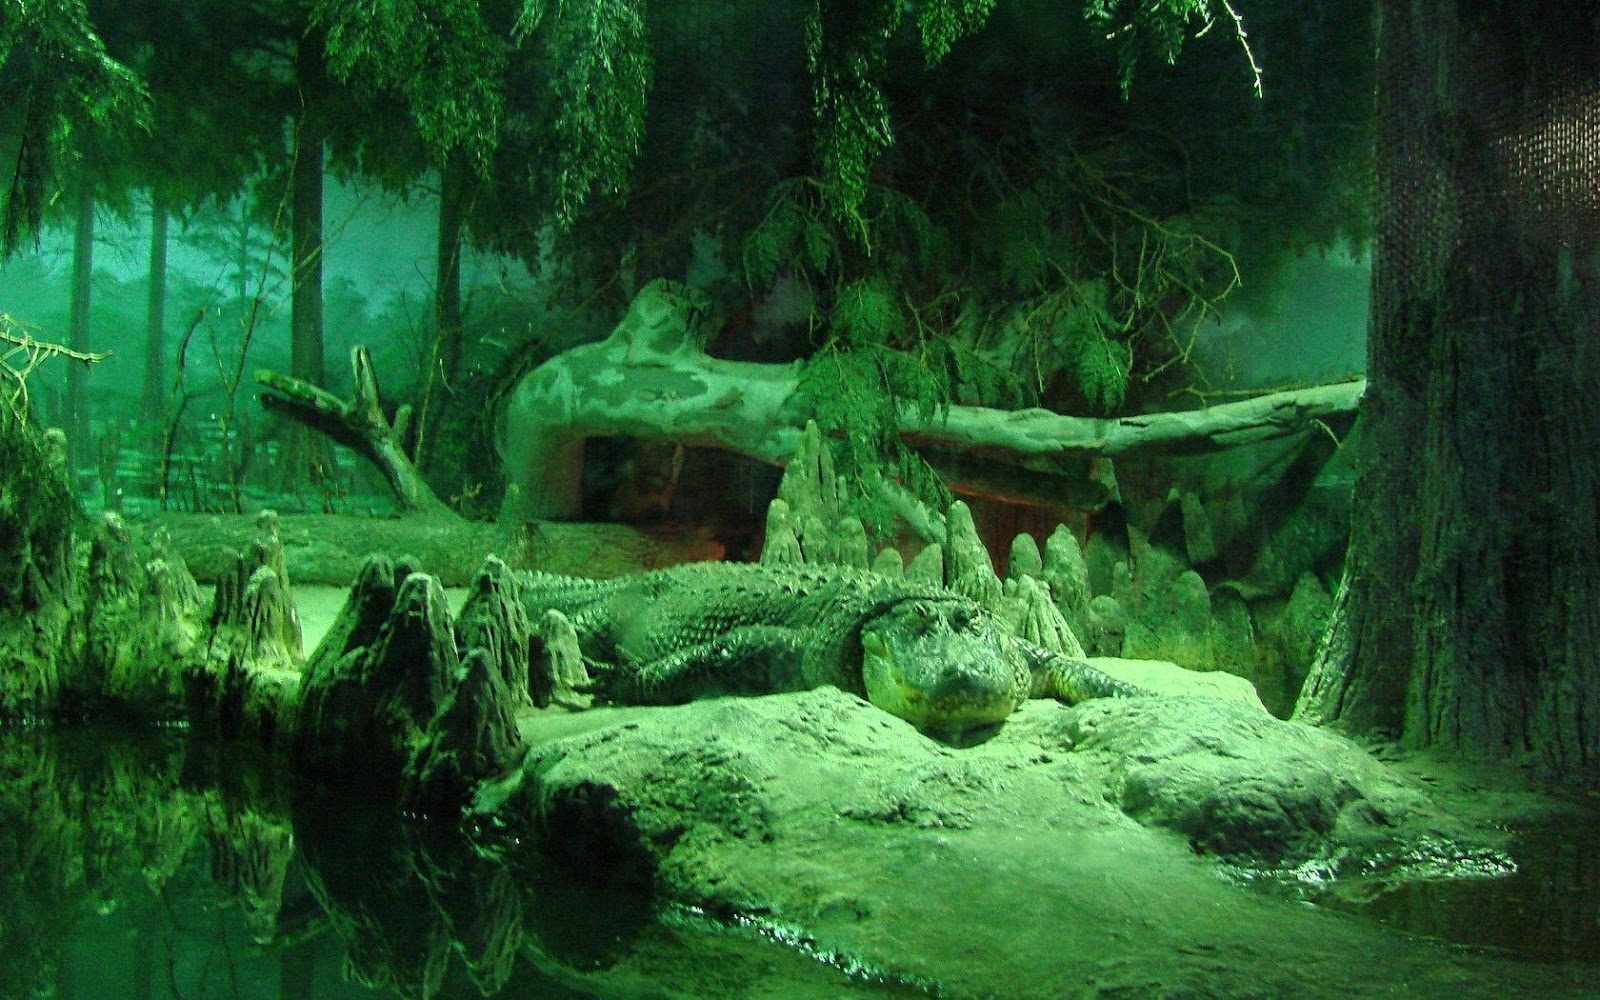 Alligator Wallpapers HD wallpapers